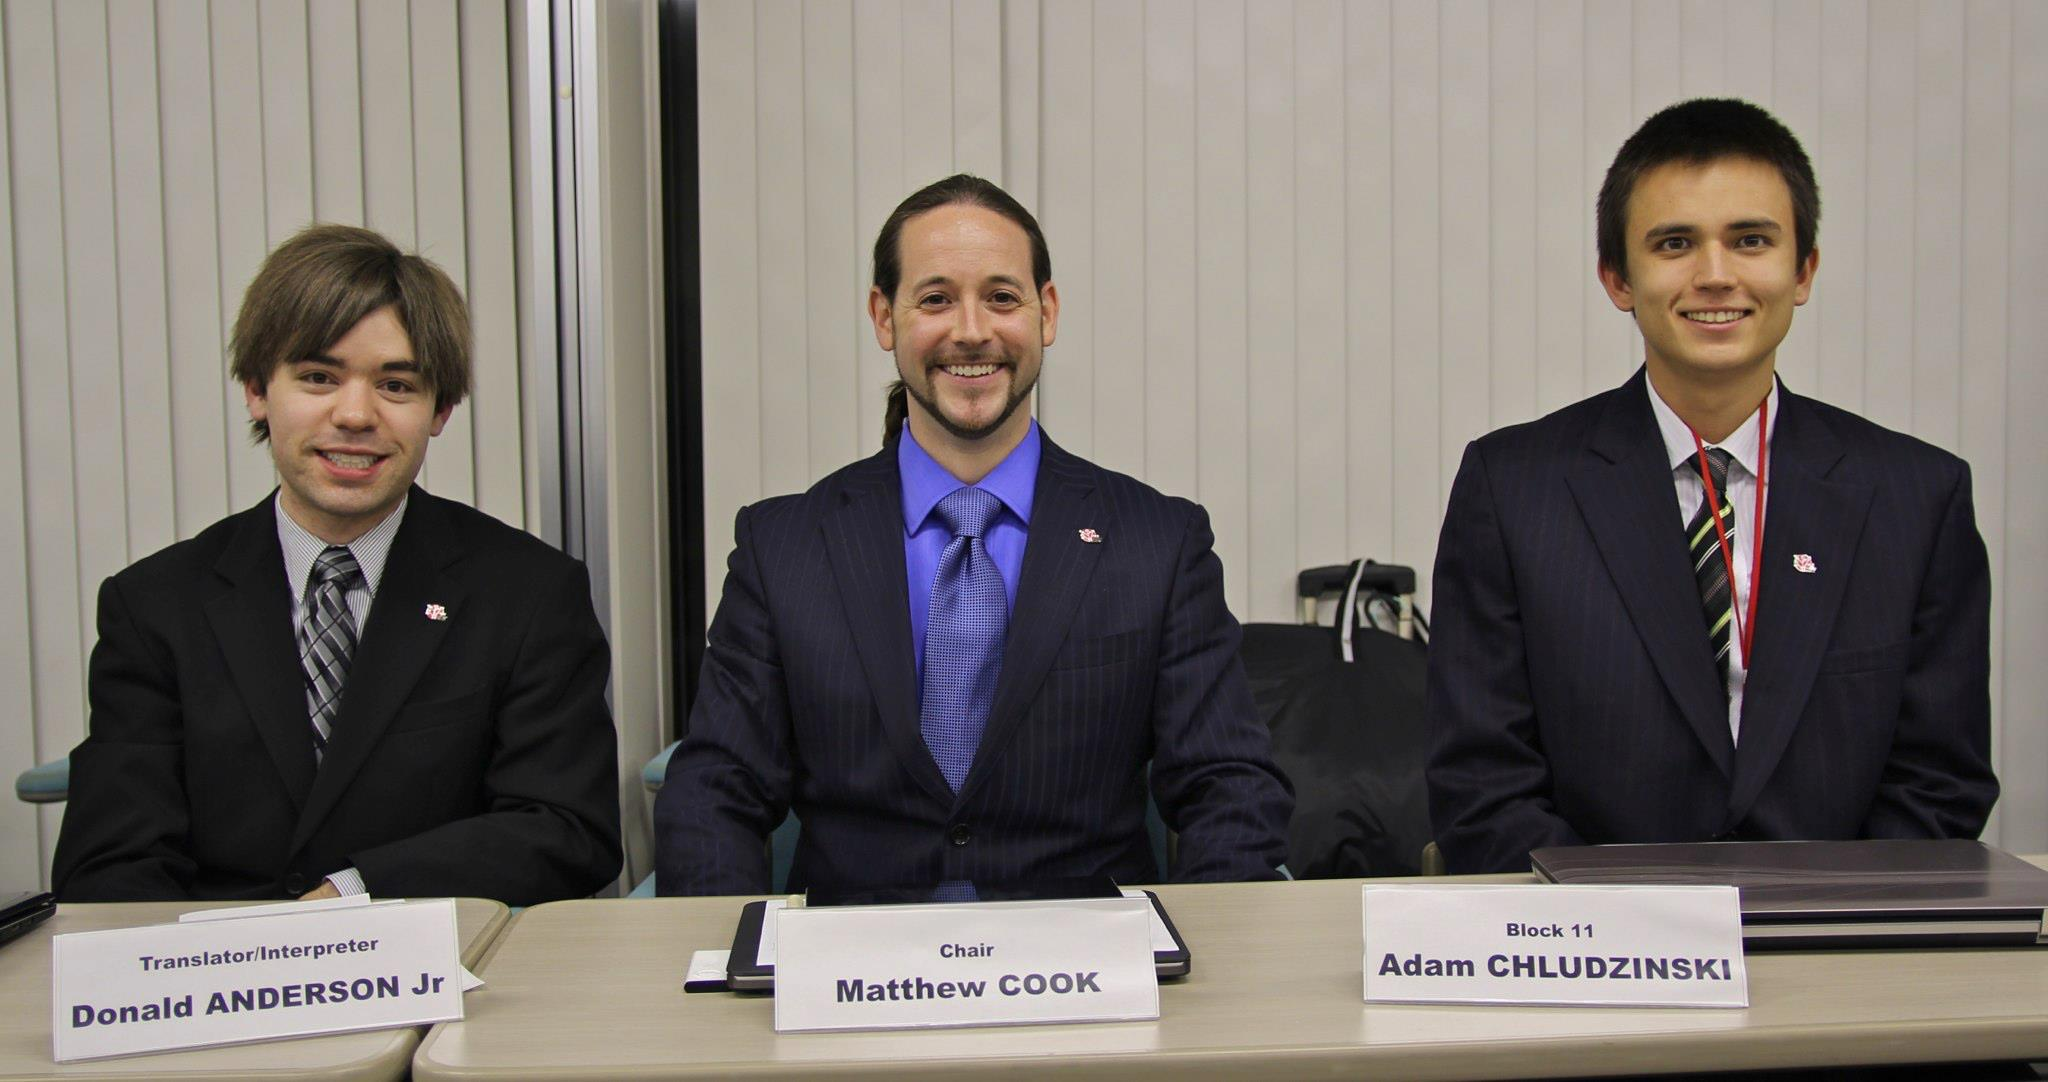 Donny Anderson, (Translator) Matthew Cook (Chair) and Adam Chludzinski (Block 11 Rep)